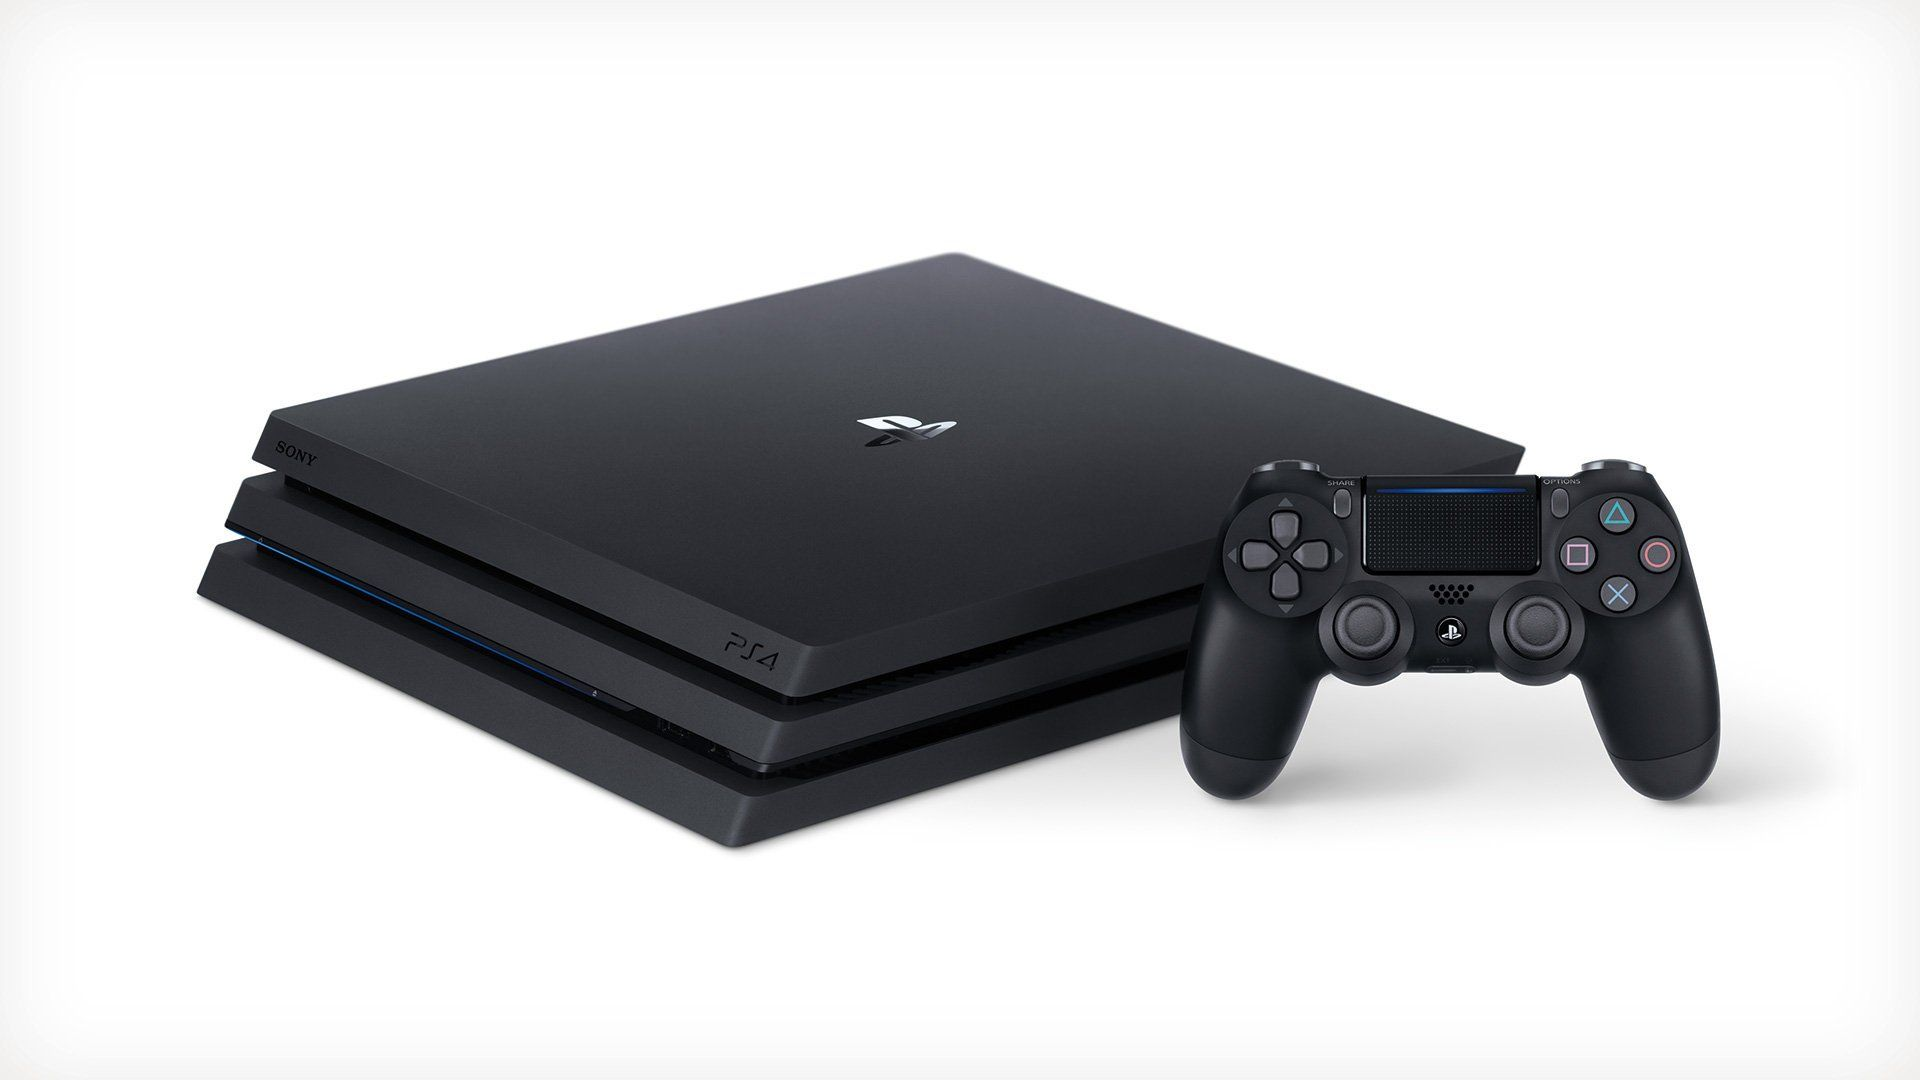 Playstation 4 Pro Ps4 Neo Playstation4pro Playstation4neo Ps4neo Ps4pro Ps4 Pro Console Playstation 4 Console Sony Playstation